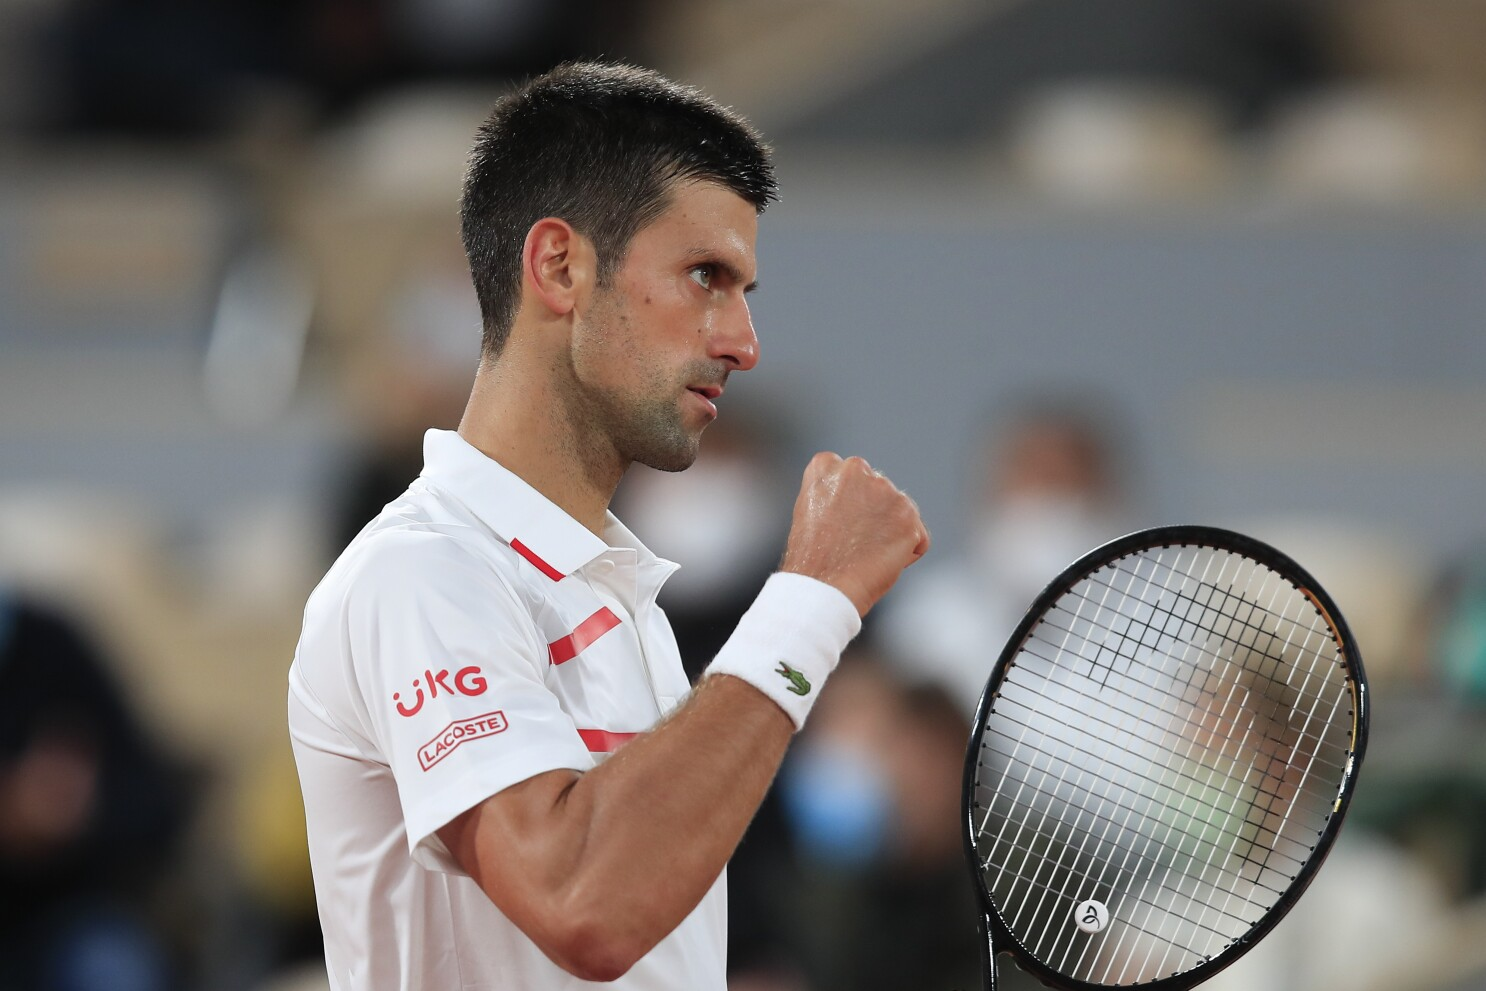 French Open Novak Djokovic Near Flawless In First Round Los Angeles Times